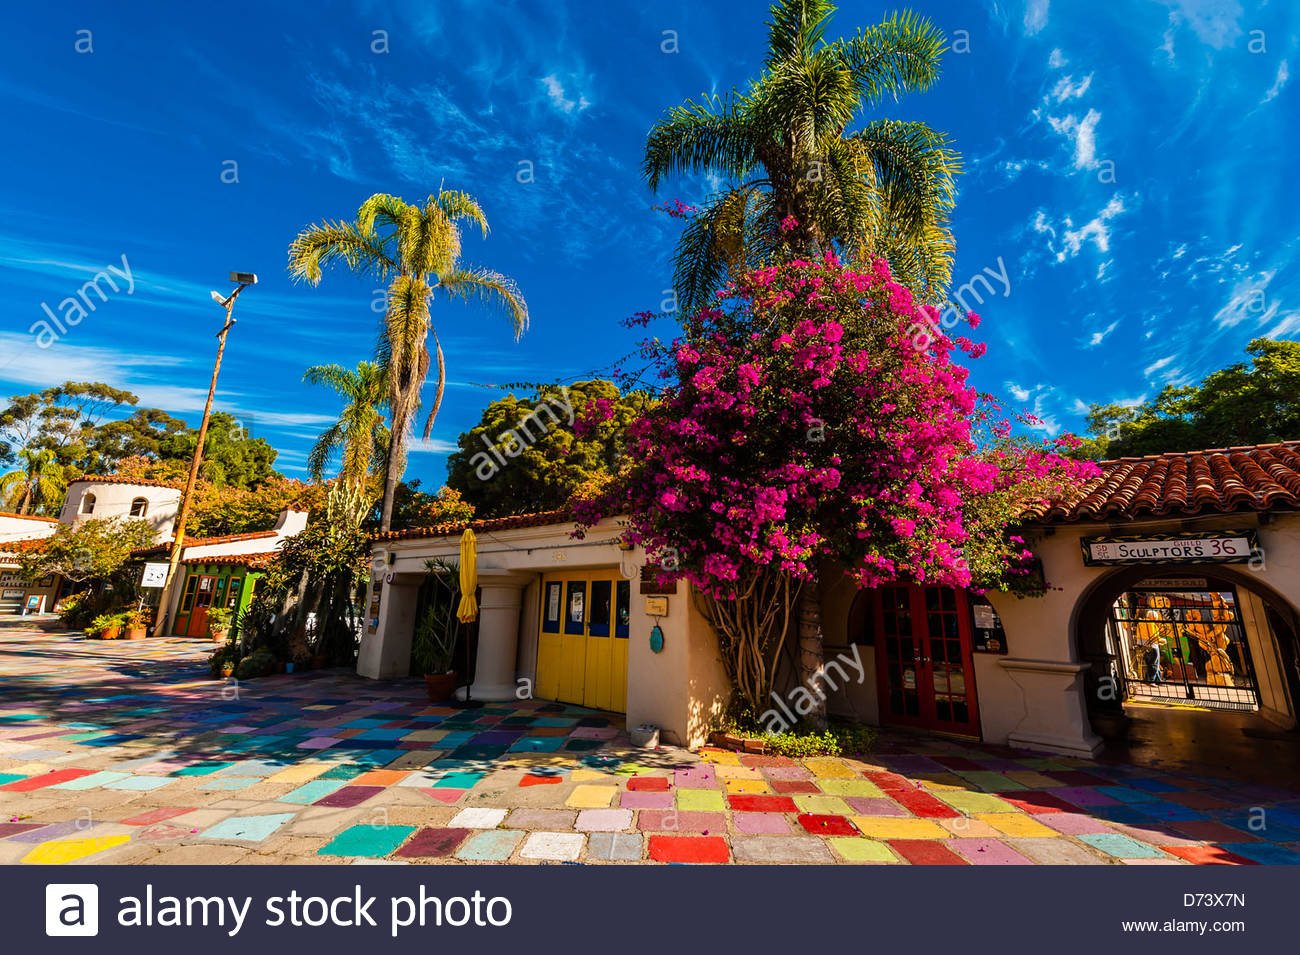 spanish village art center, balboa park, san diego, california usa